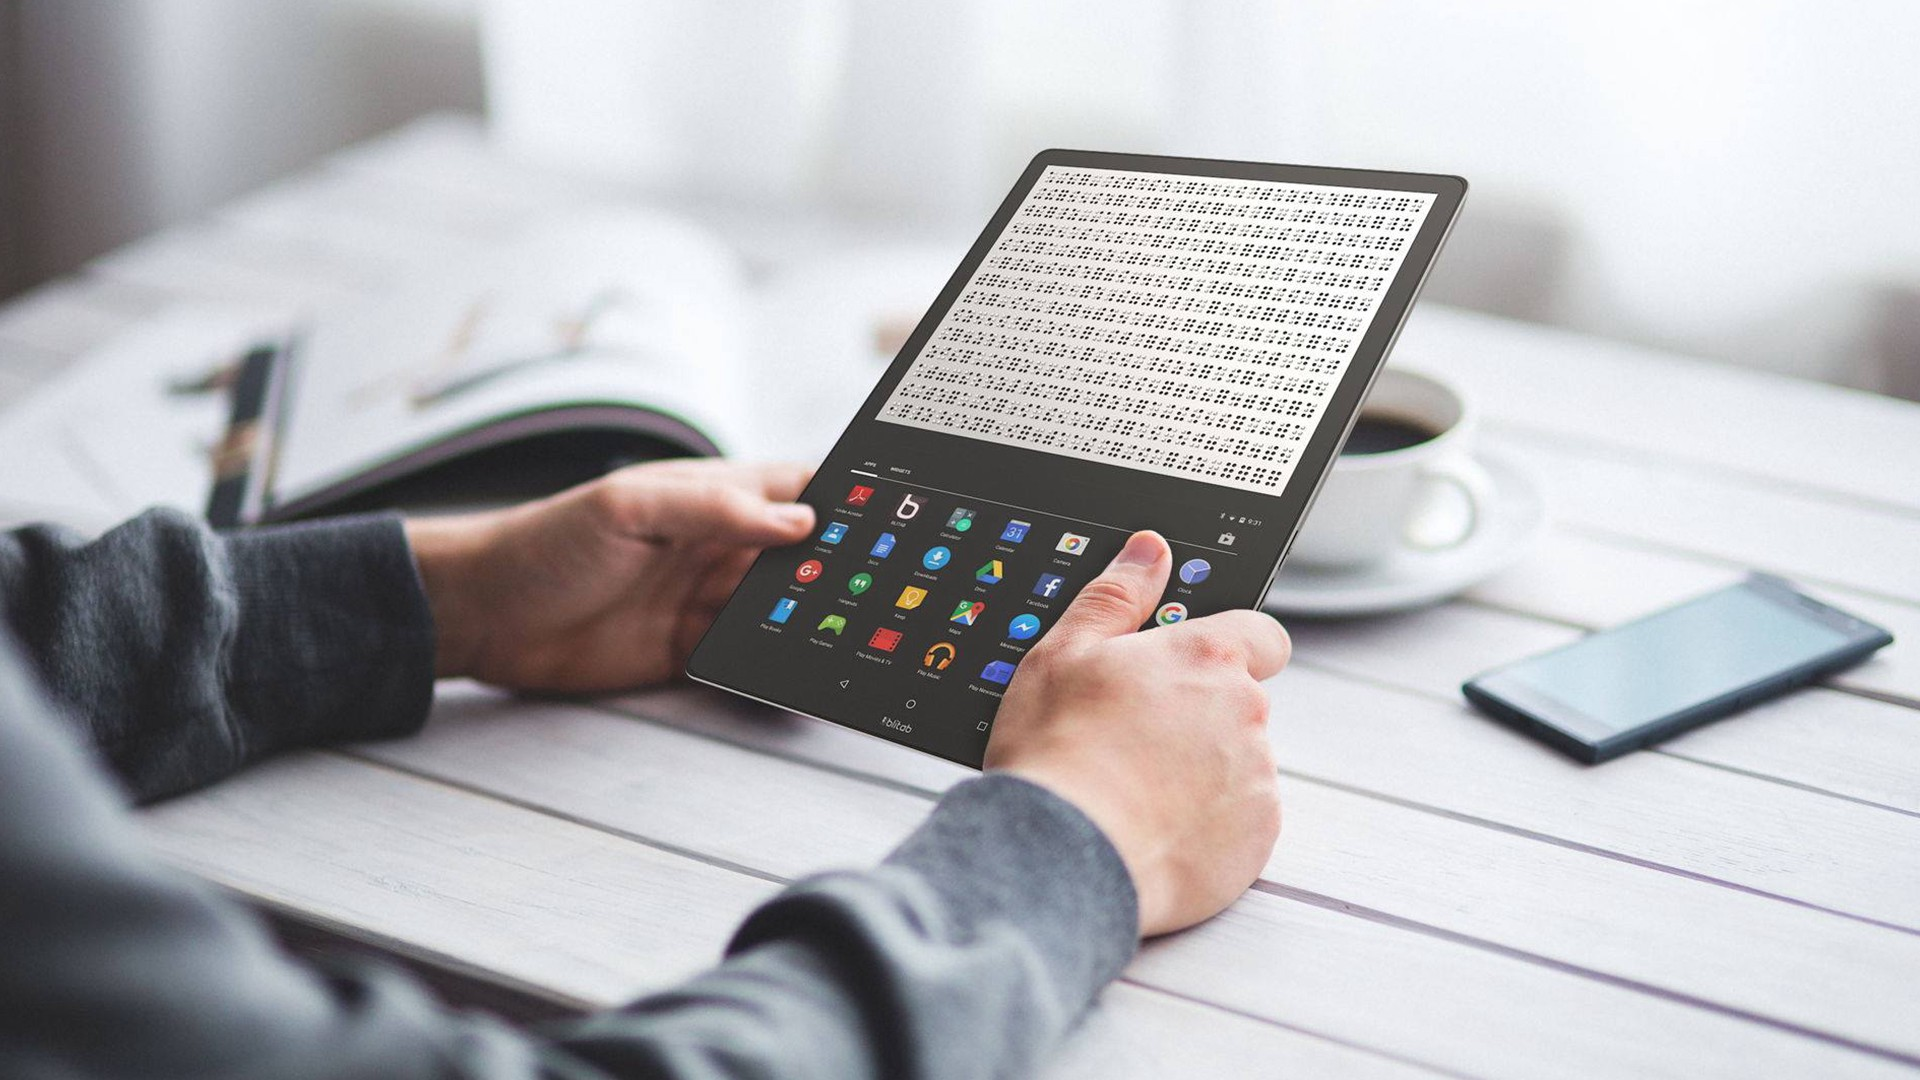 Innovative New Tablet: BLITAB. If you're into innovative tech that… | by  United Smart Tech | Medium